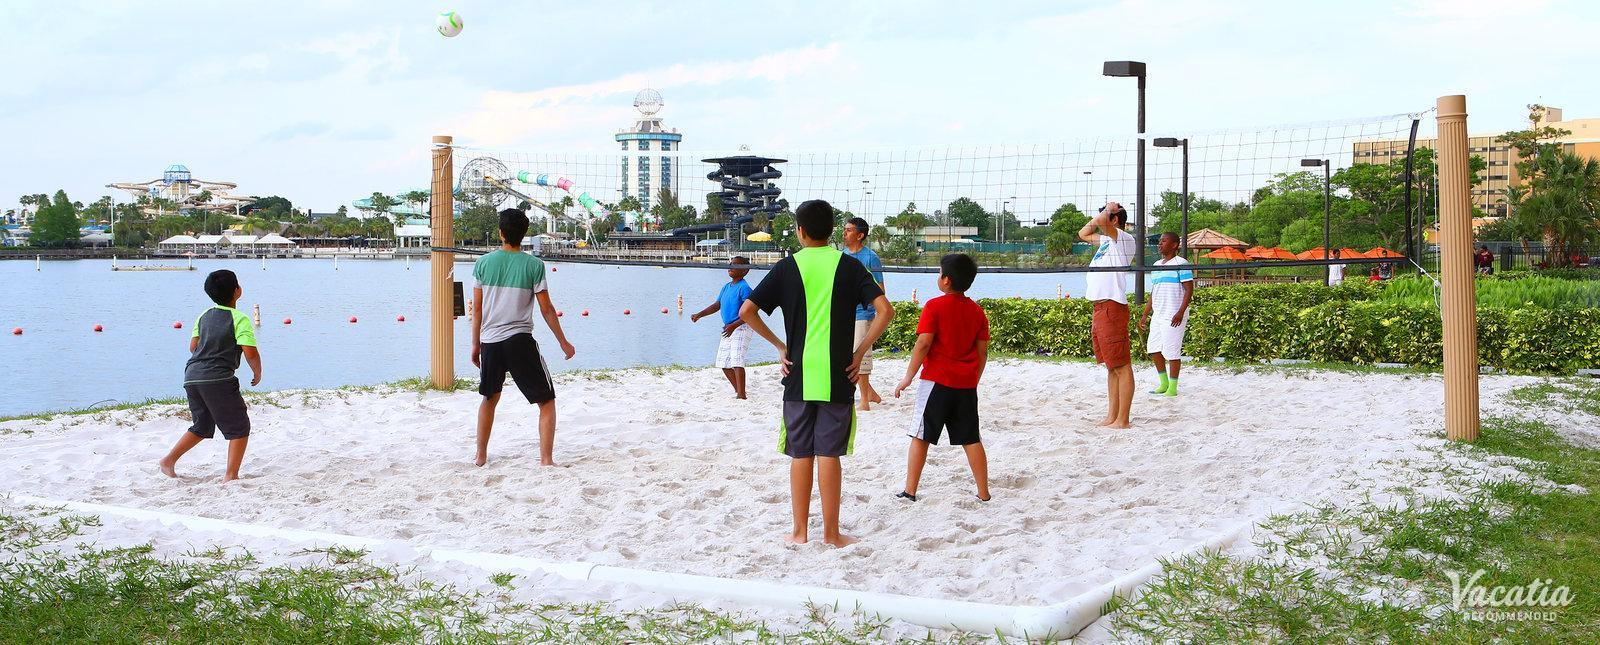 Westgate Palace Resort Beach Volleyball Court